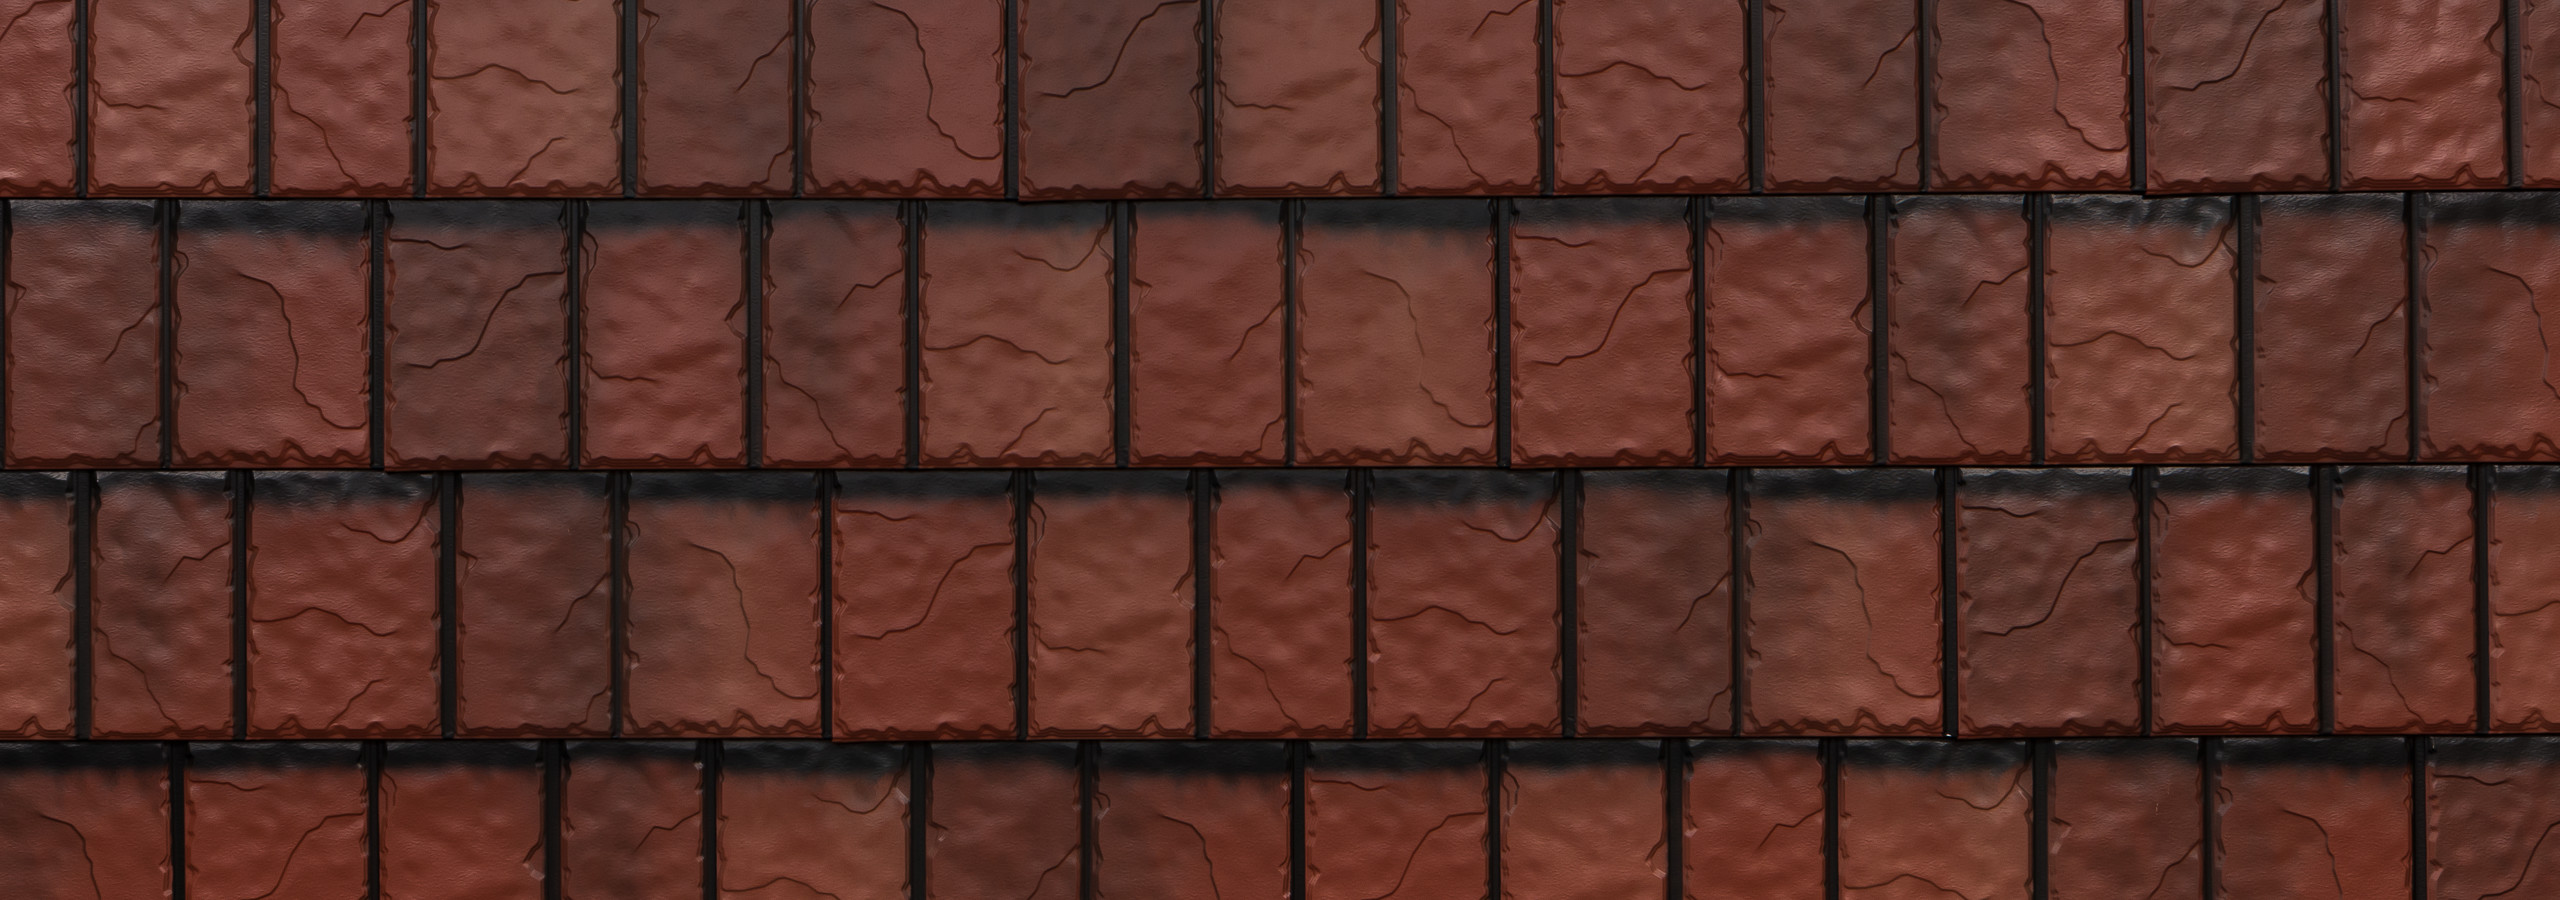 Classic red steel slate roofing